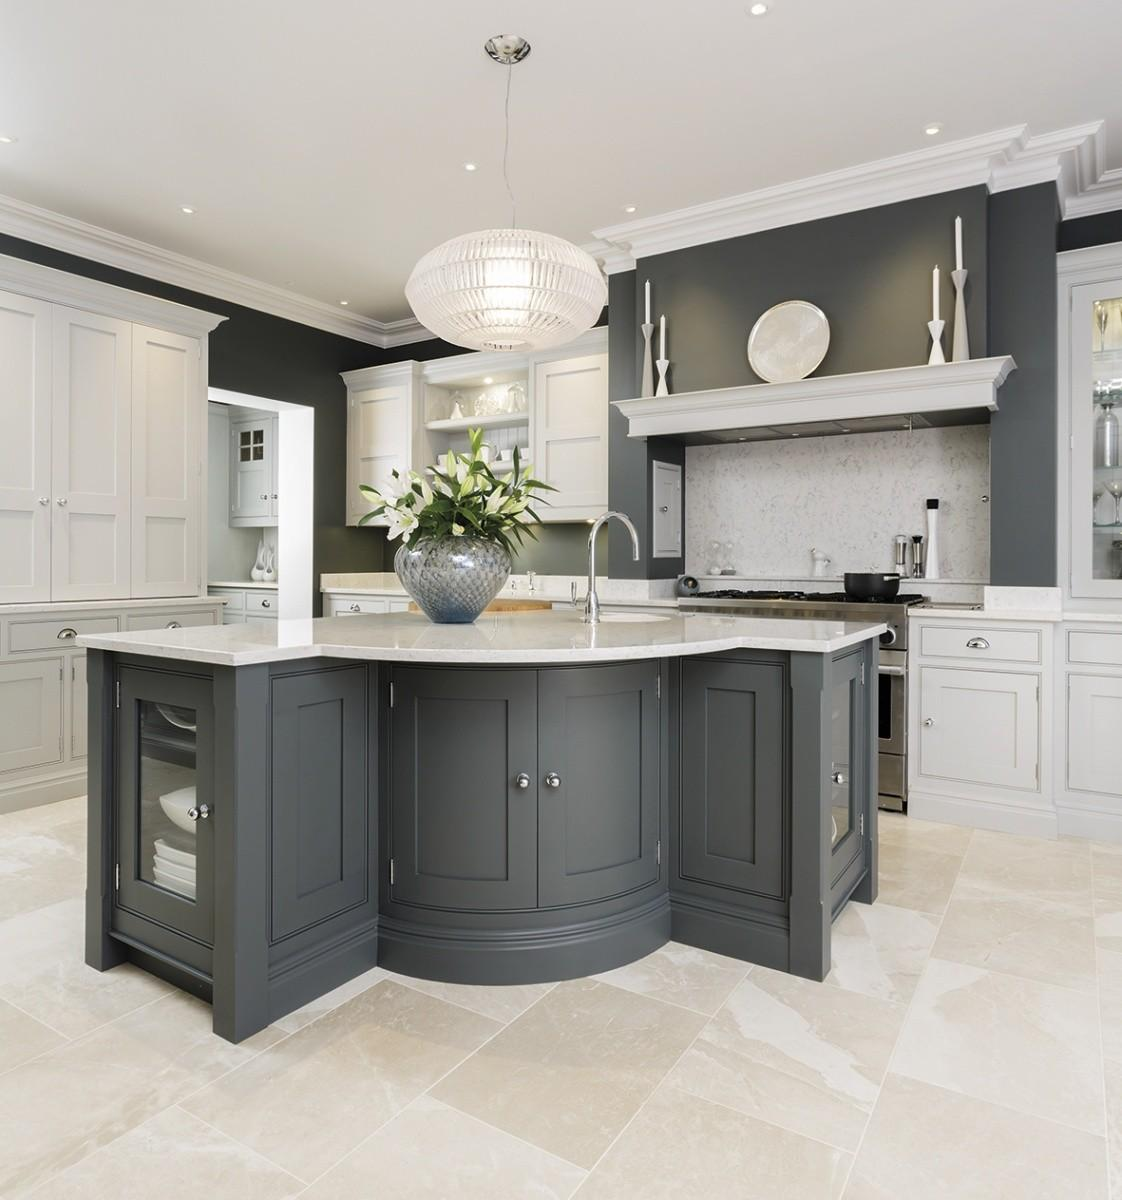 Luxury Kitchen Designer Tom Howley Opened New Showroom